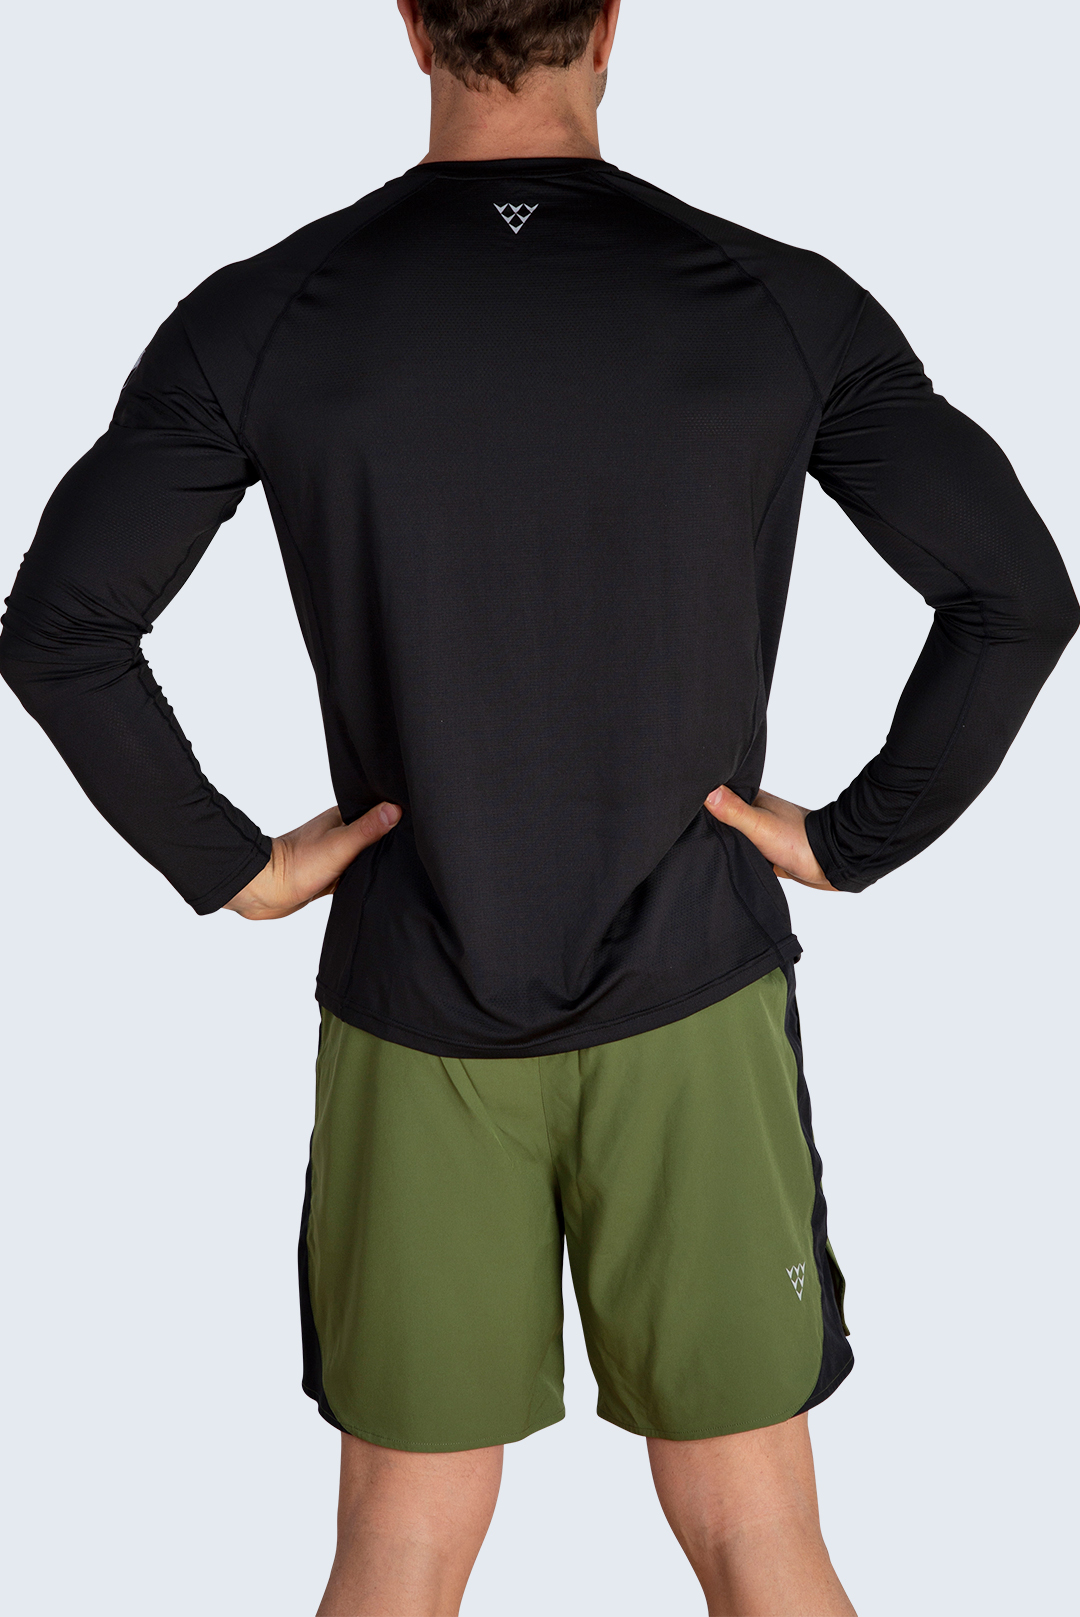 Men's Classic Long Sleeve Top